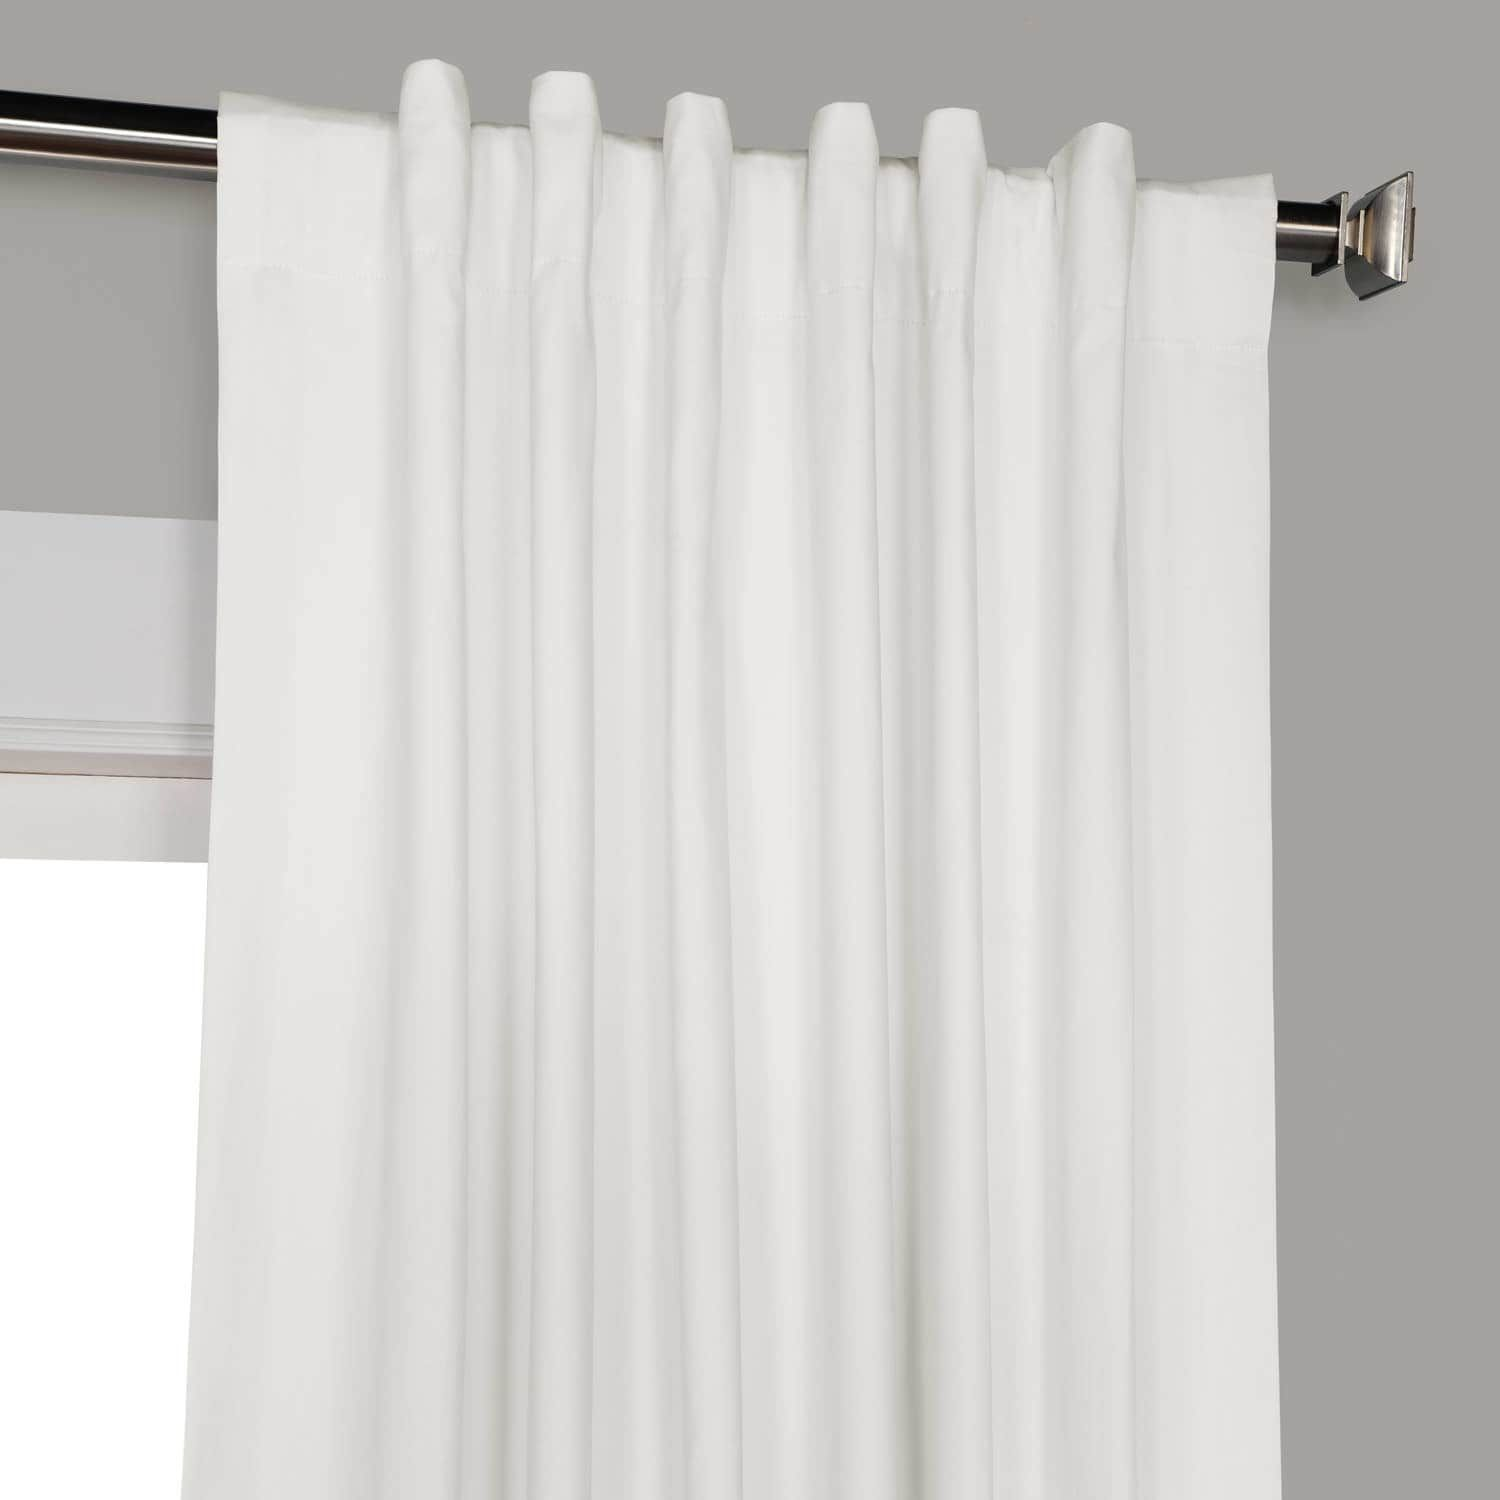 Whisper White Solid Cotton Blackout Curtain Blackout Curtains Cotton Blackout Curtains Drapes And Blinds